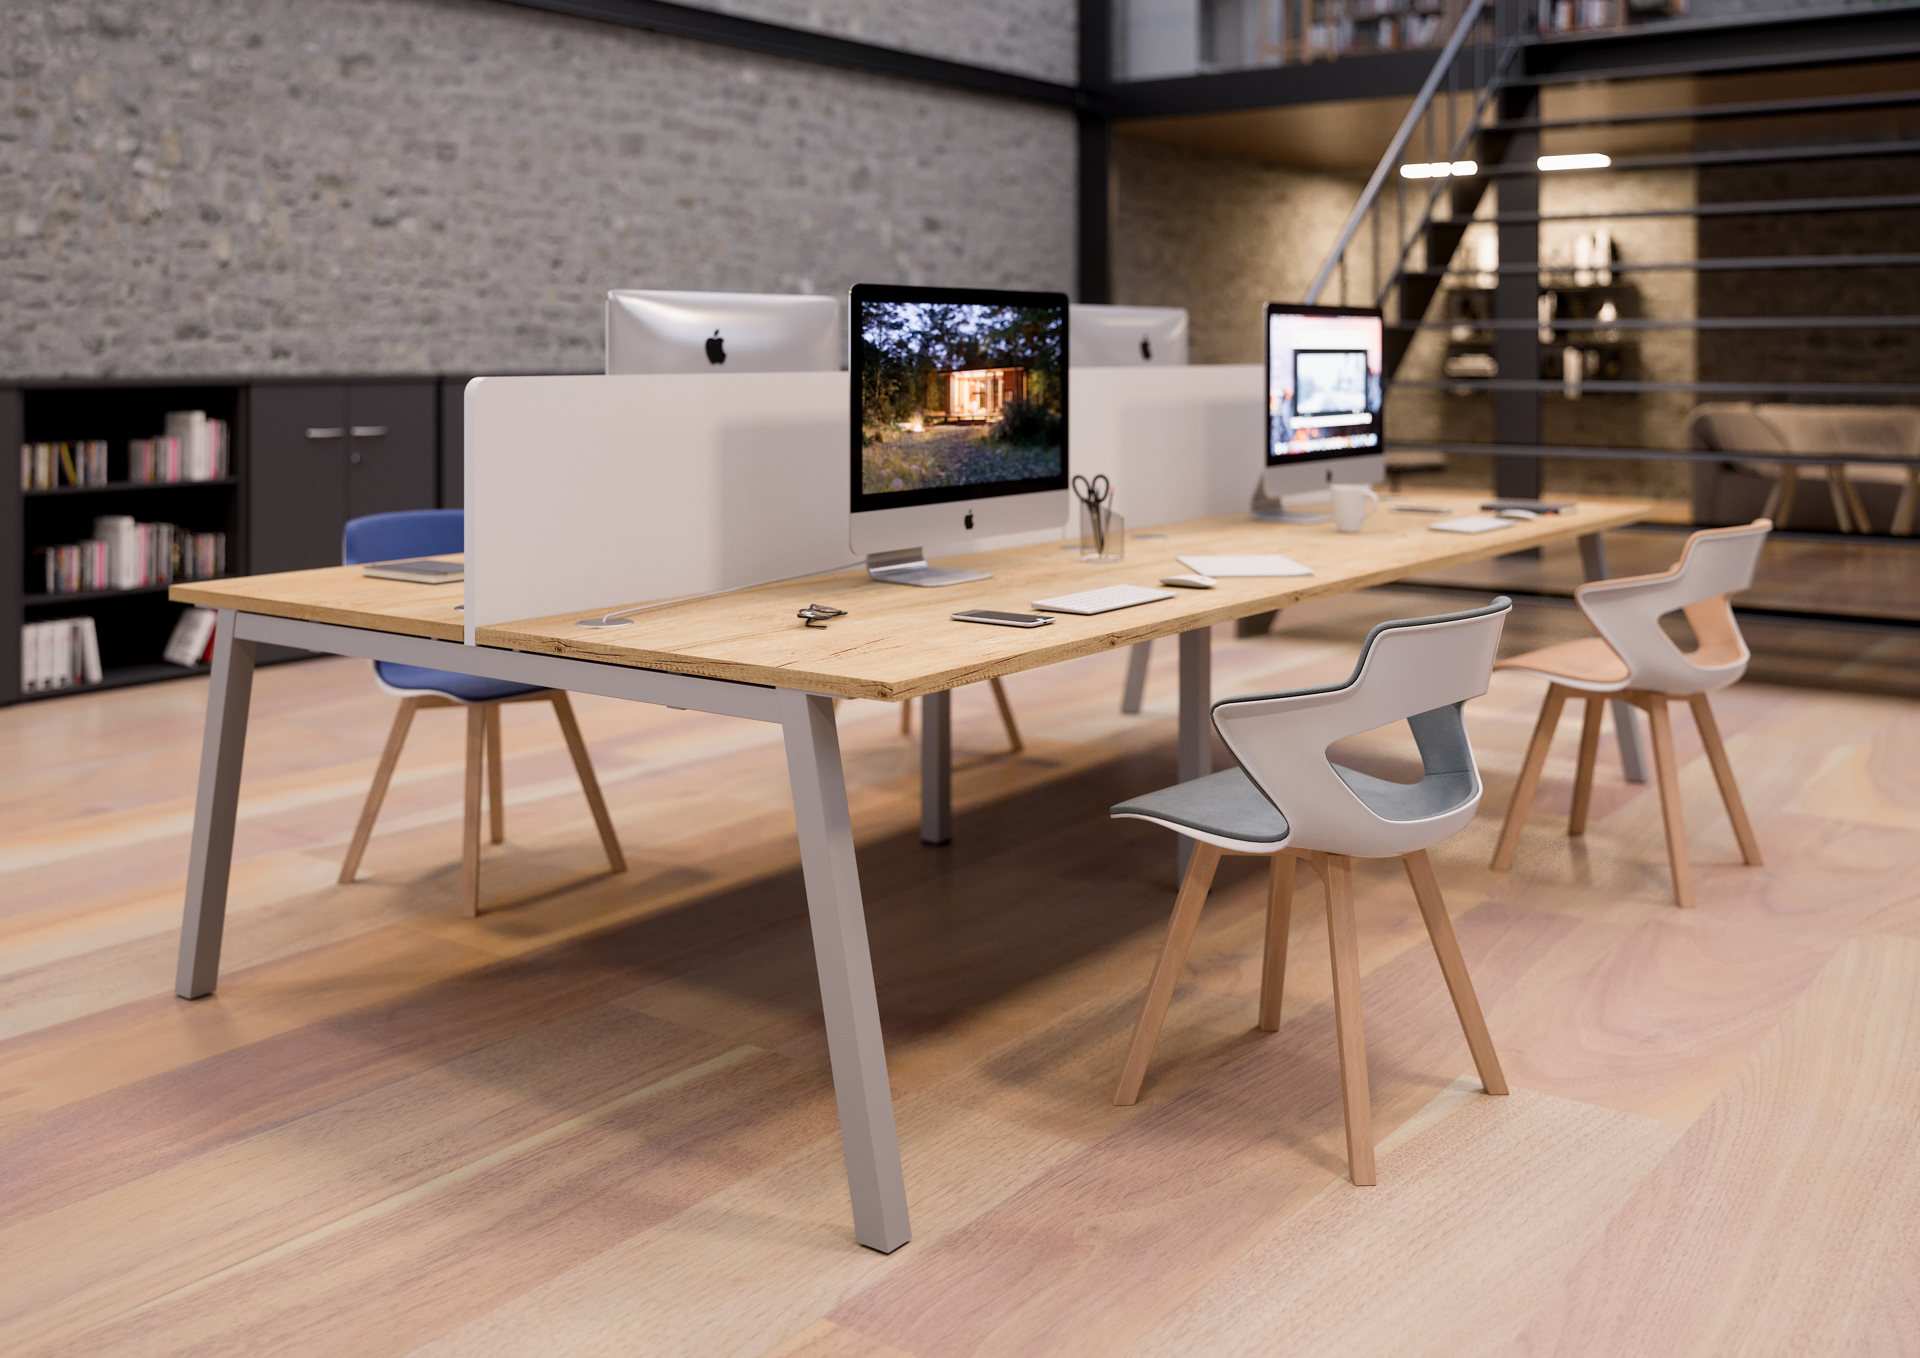 Picture for category Partage Bench Desks